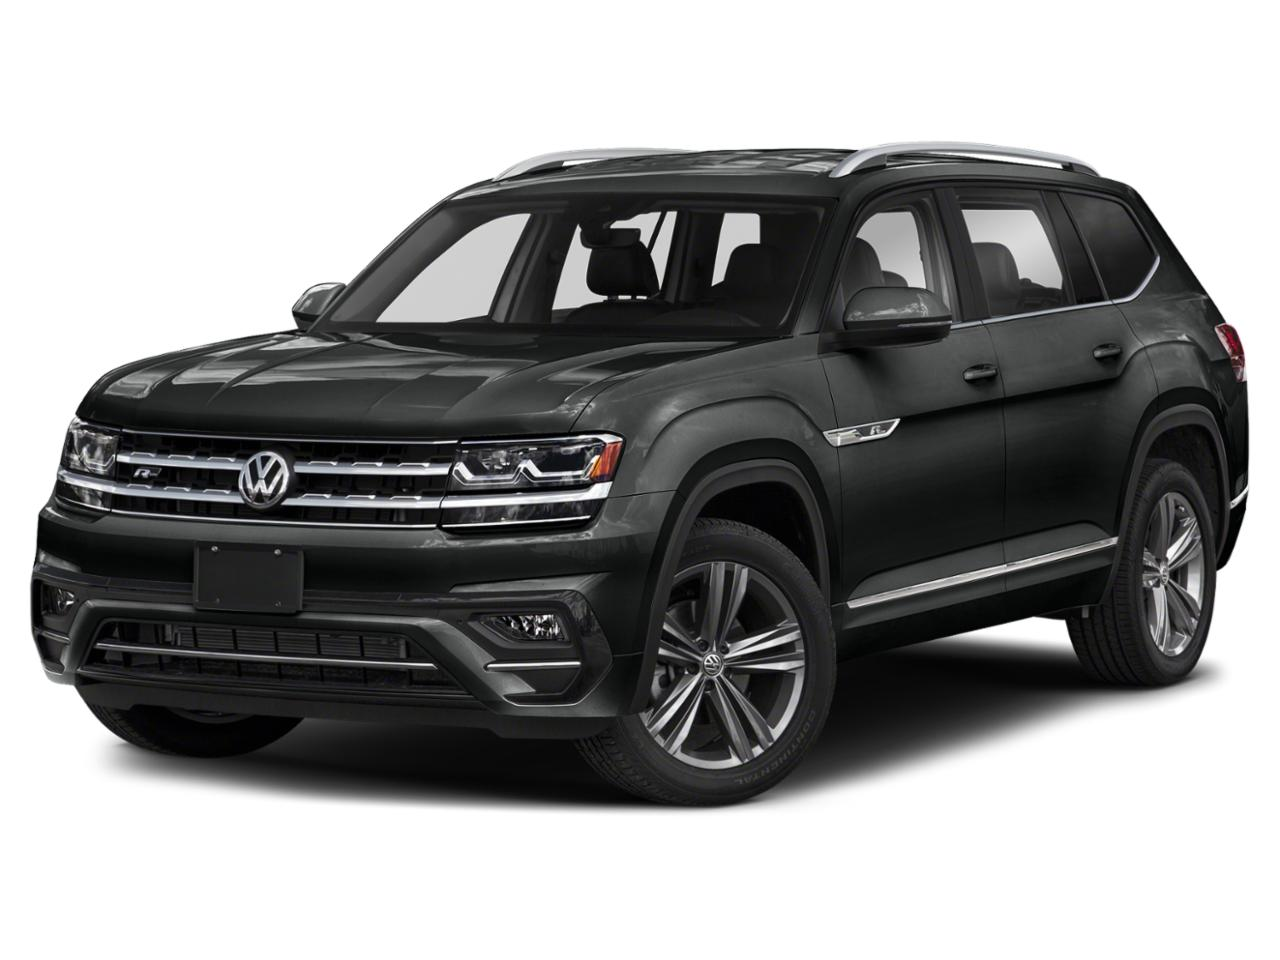 2019 Volkswagen Atlas Vehicle Photo in Bowie, MD 20716